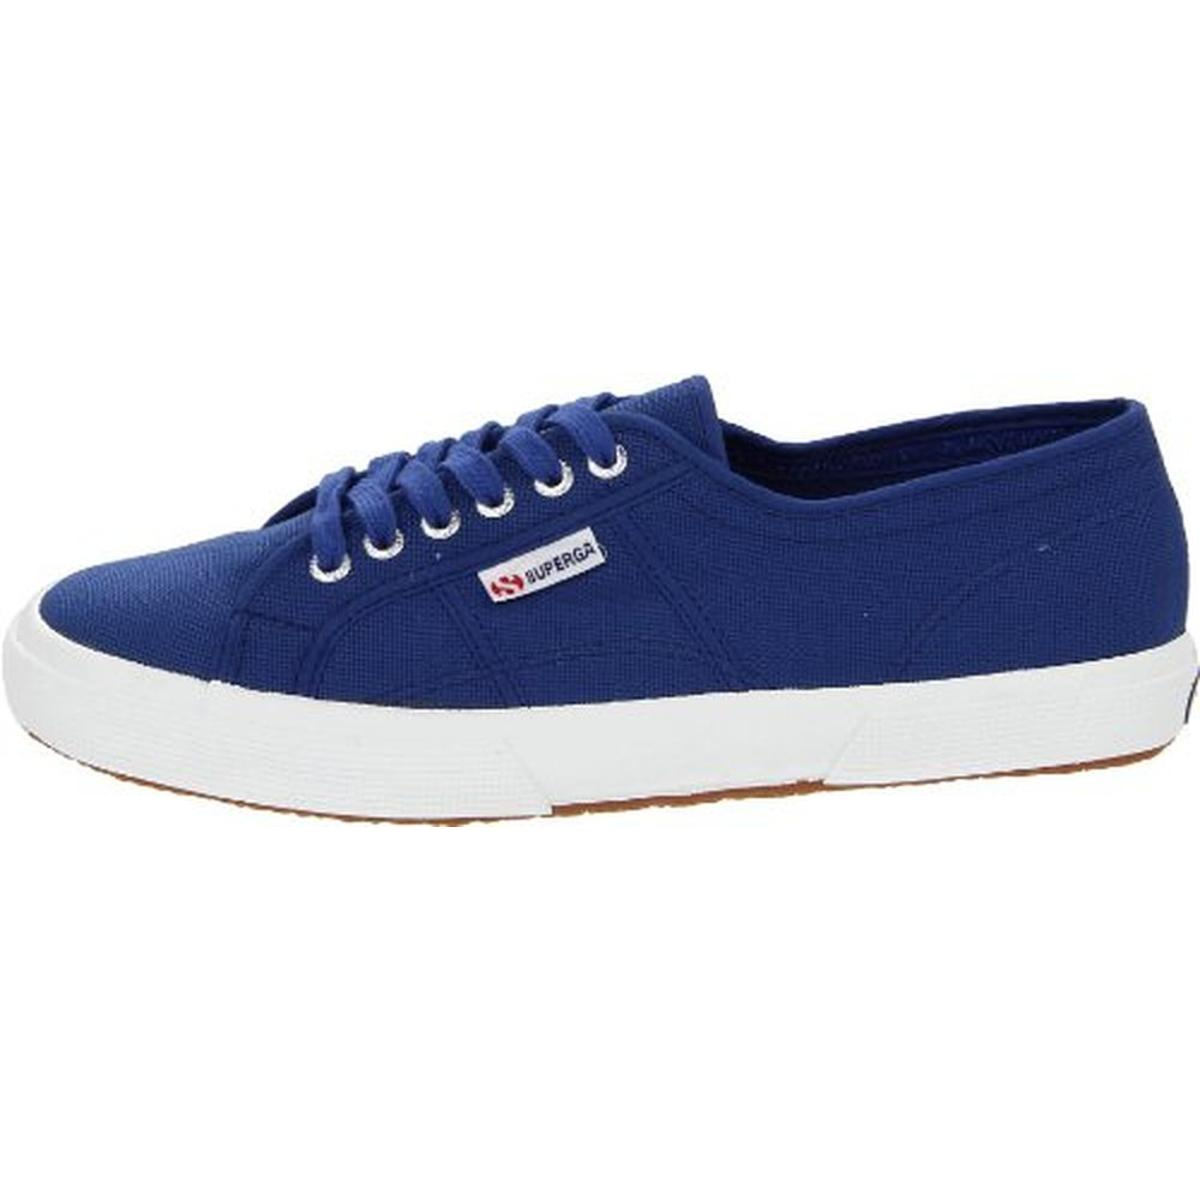 Superga Mens 2750 Classic Canvas Low-Top Lace-Up Sneakers Shoes BHFO 3708